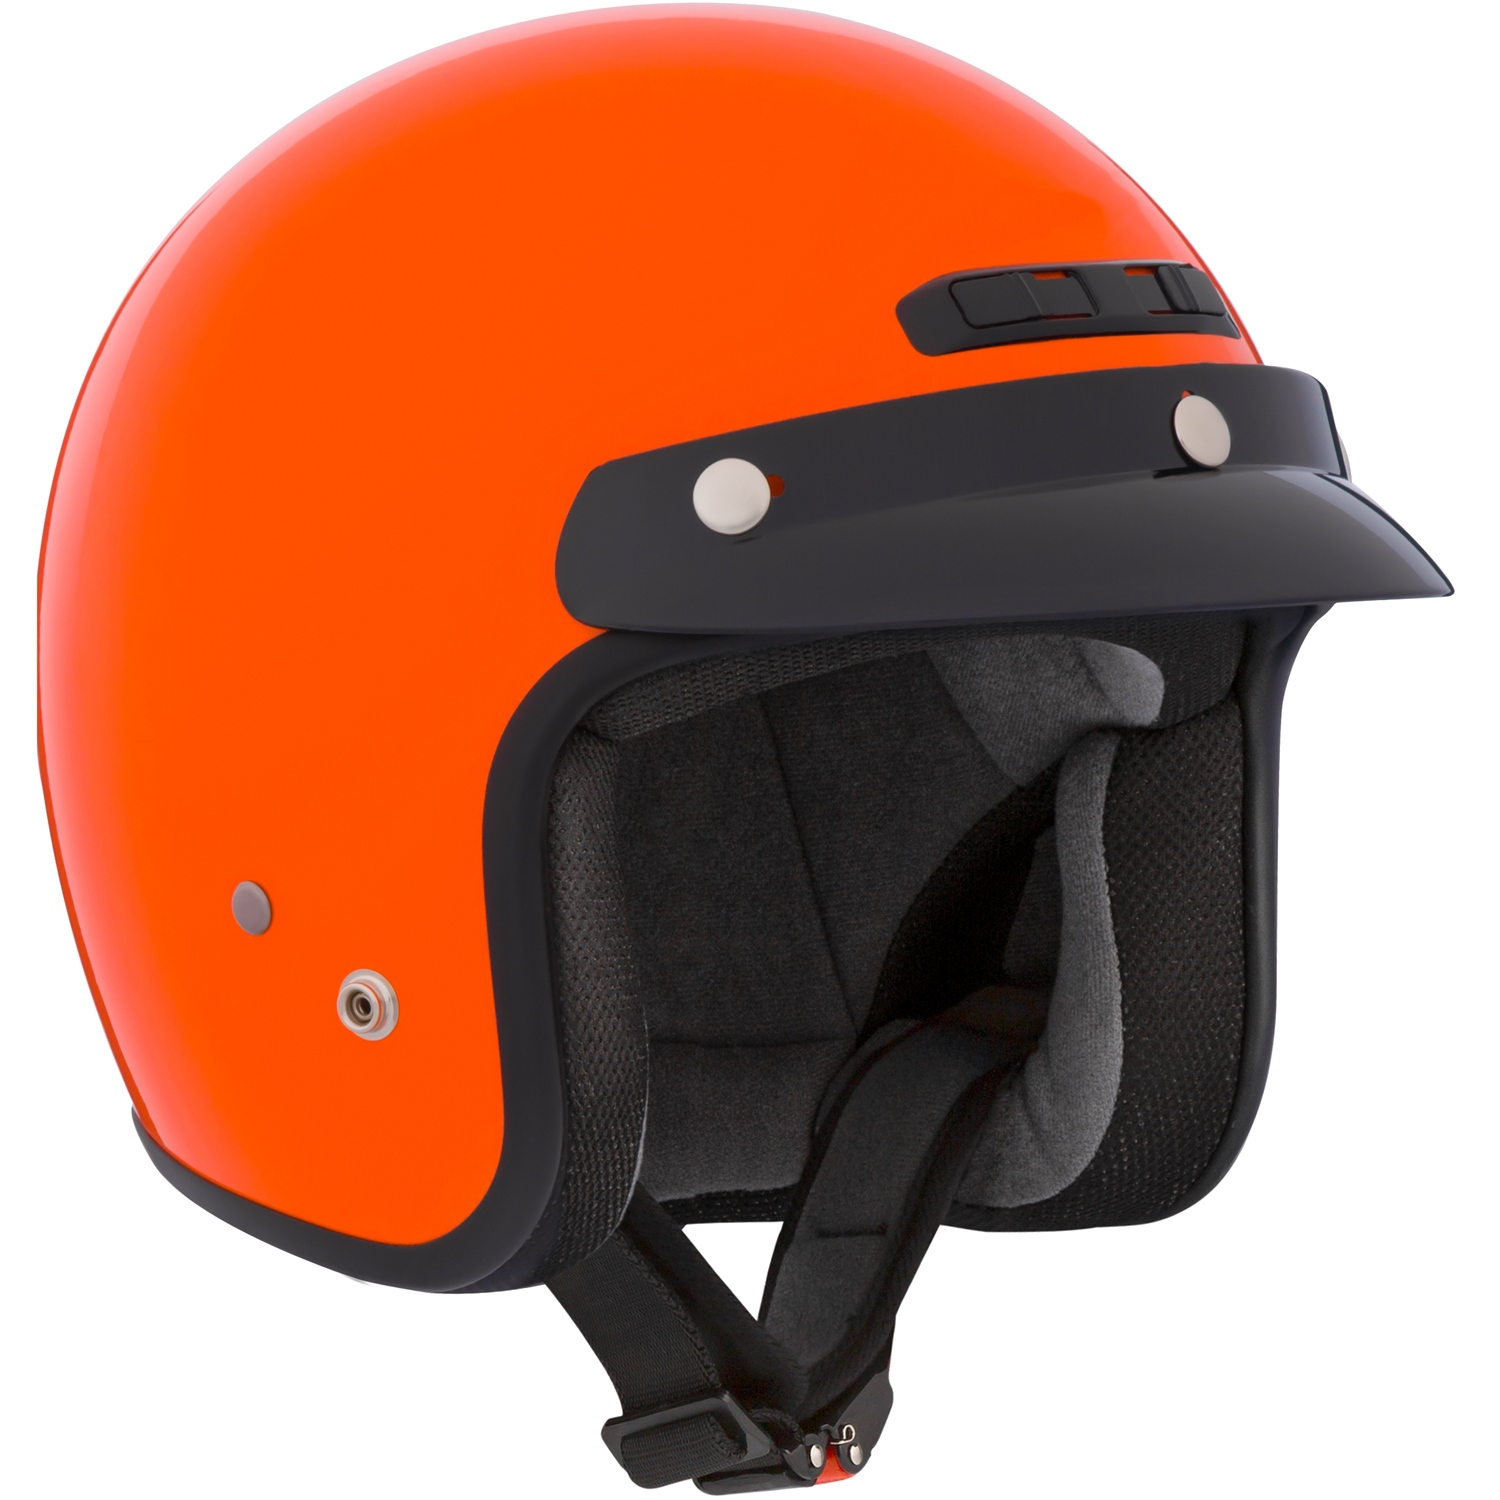 Solid CKX VG200 Open-Face Helmet EXtra Large Part# 153755XX